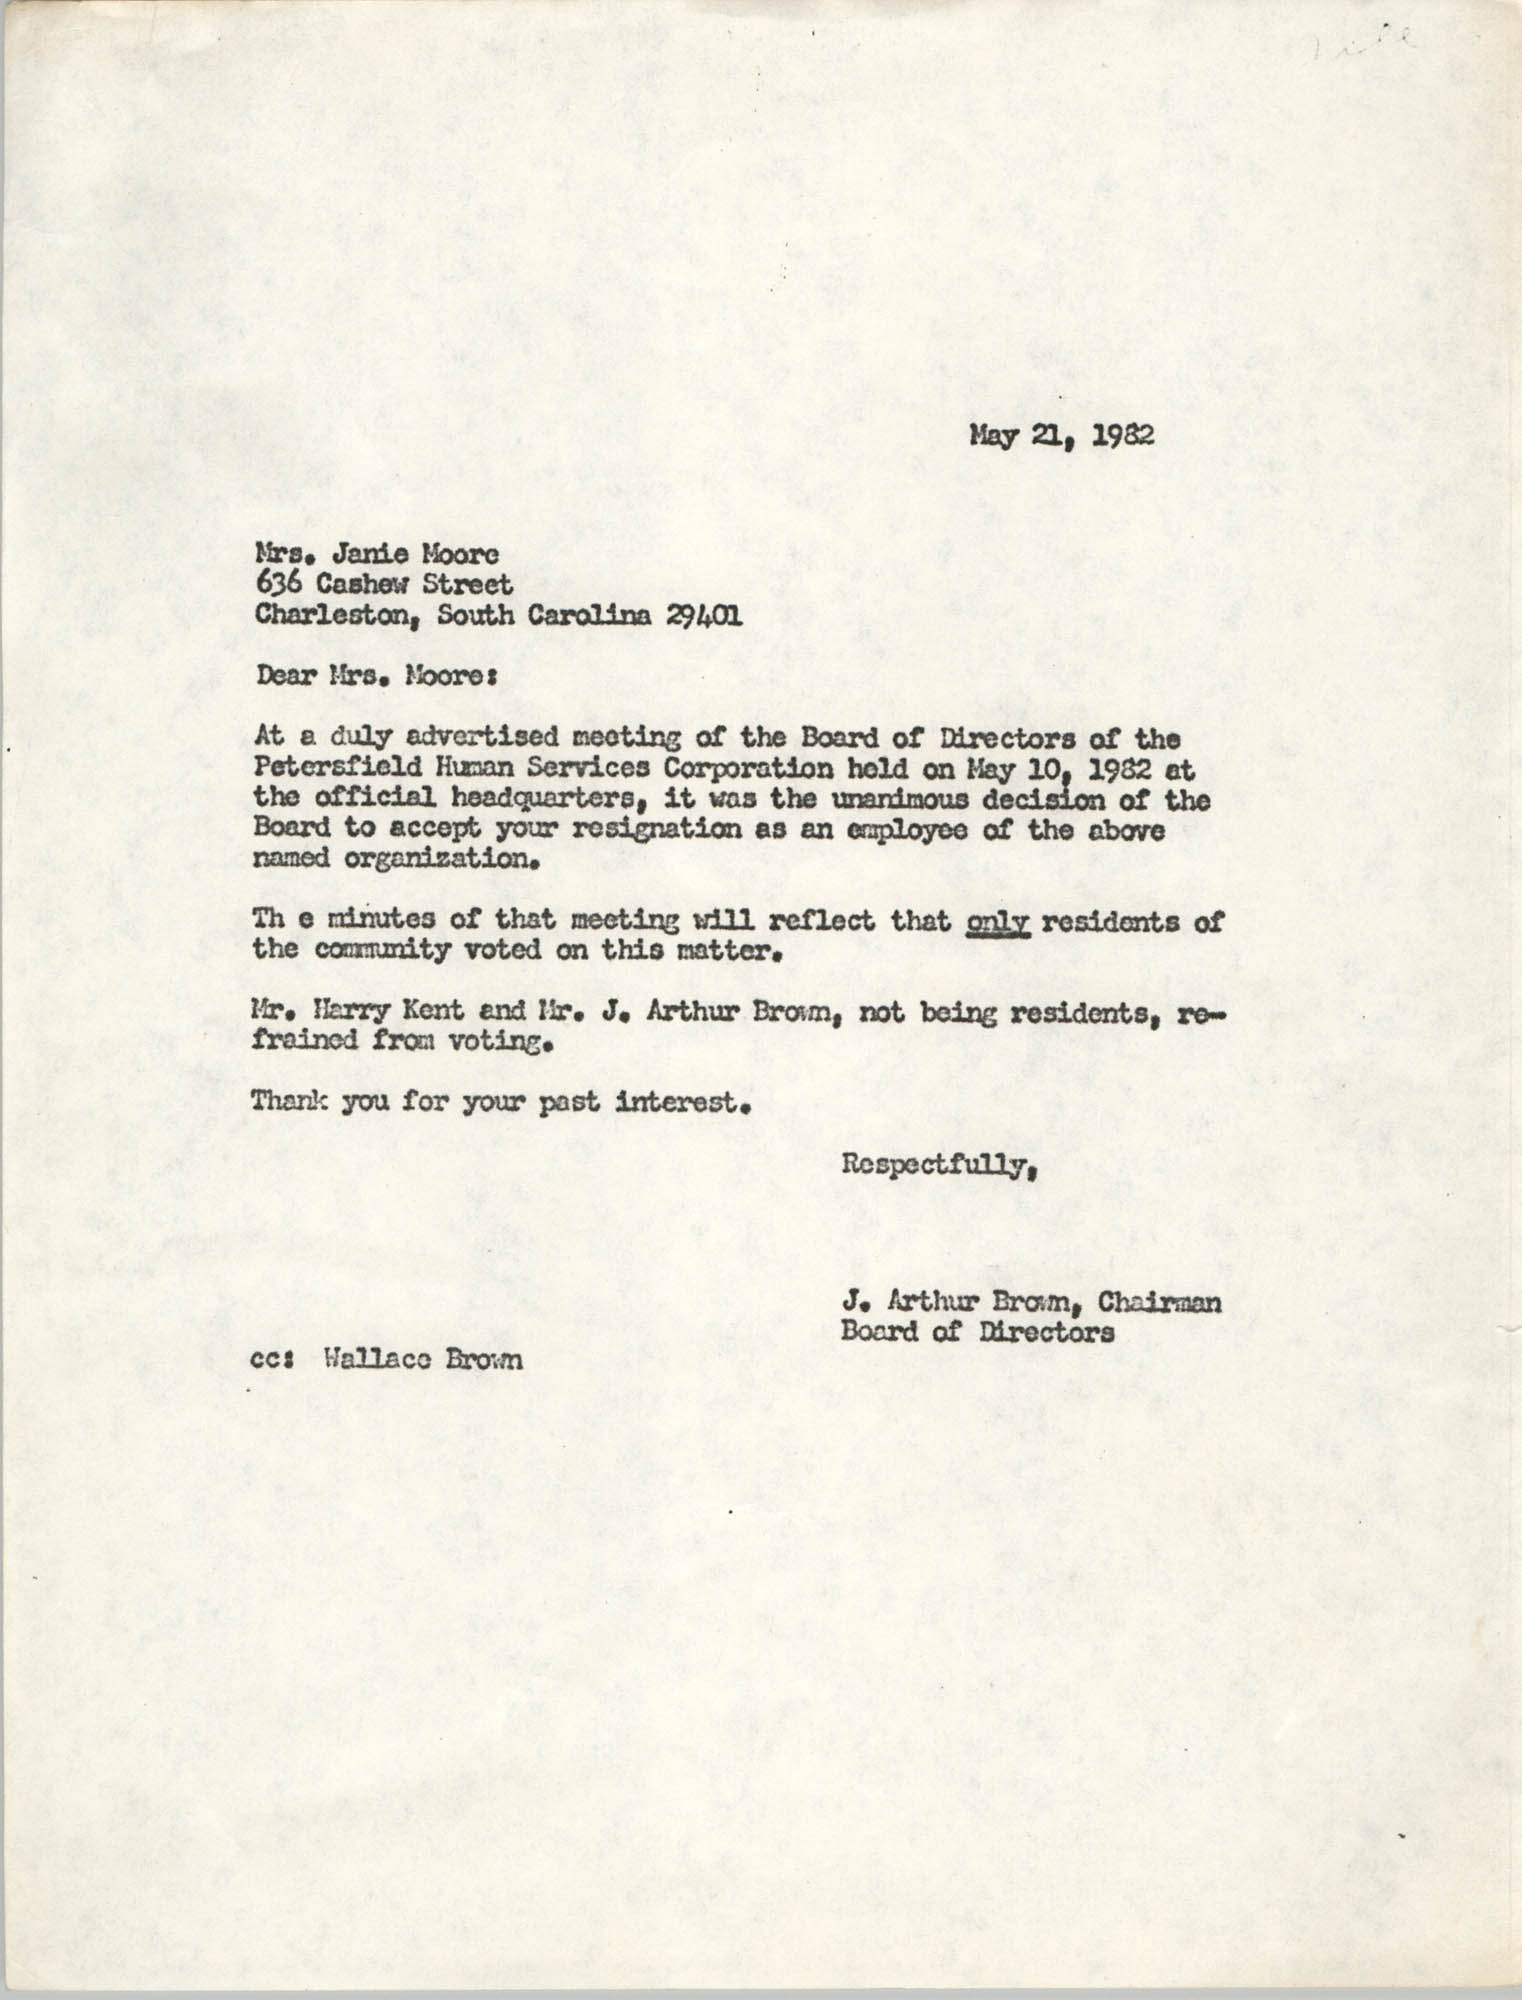 Letter from J. Arthur Brown to Janie Moore, May 21, 1982